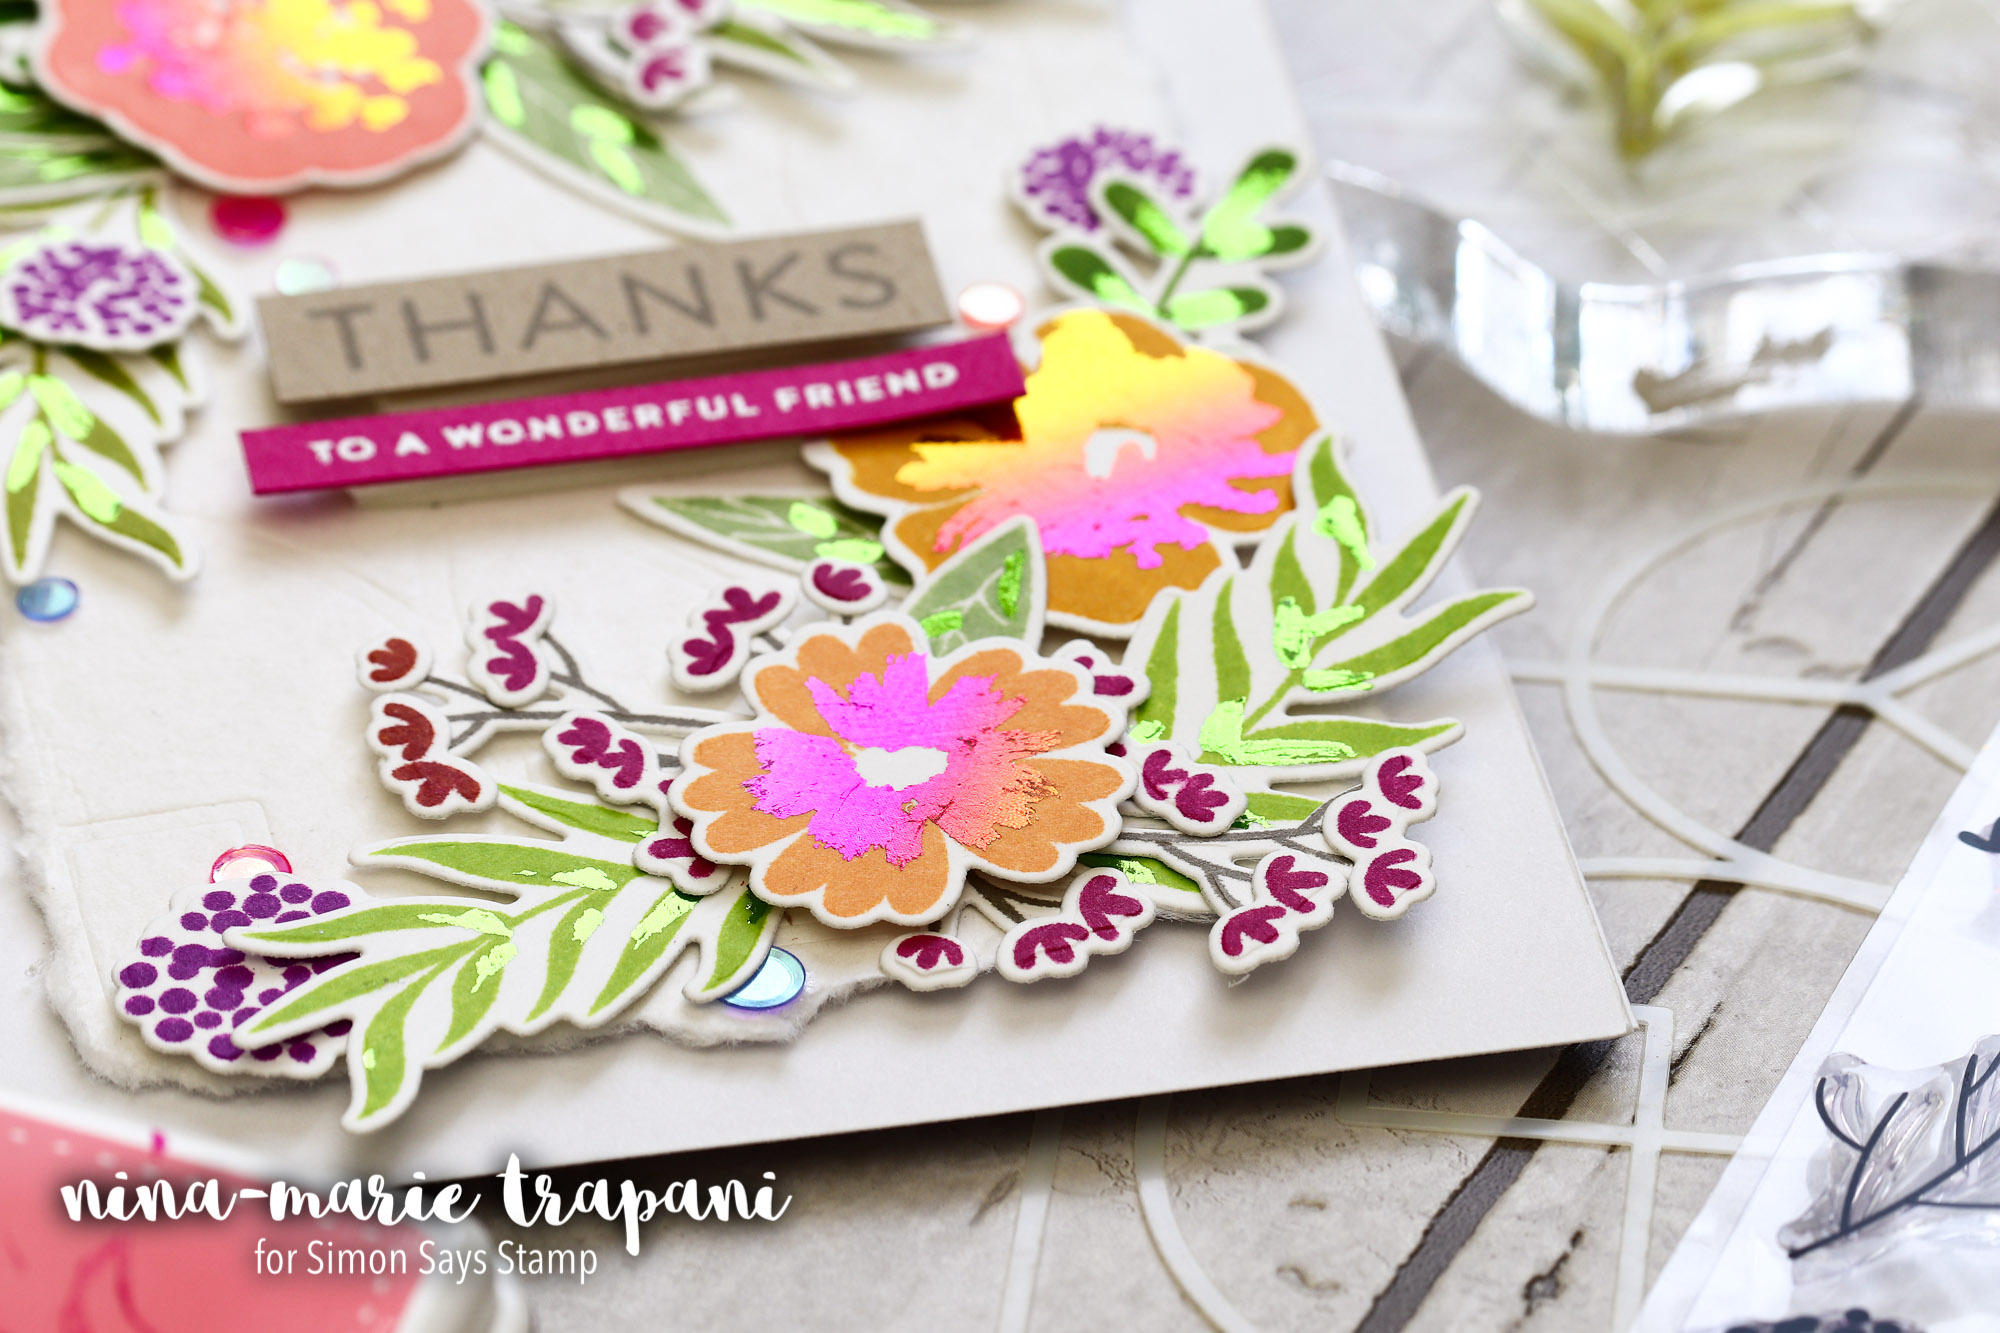 Foiled Accents on Stamped Images + Simon Release Blog Hop